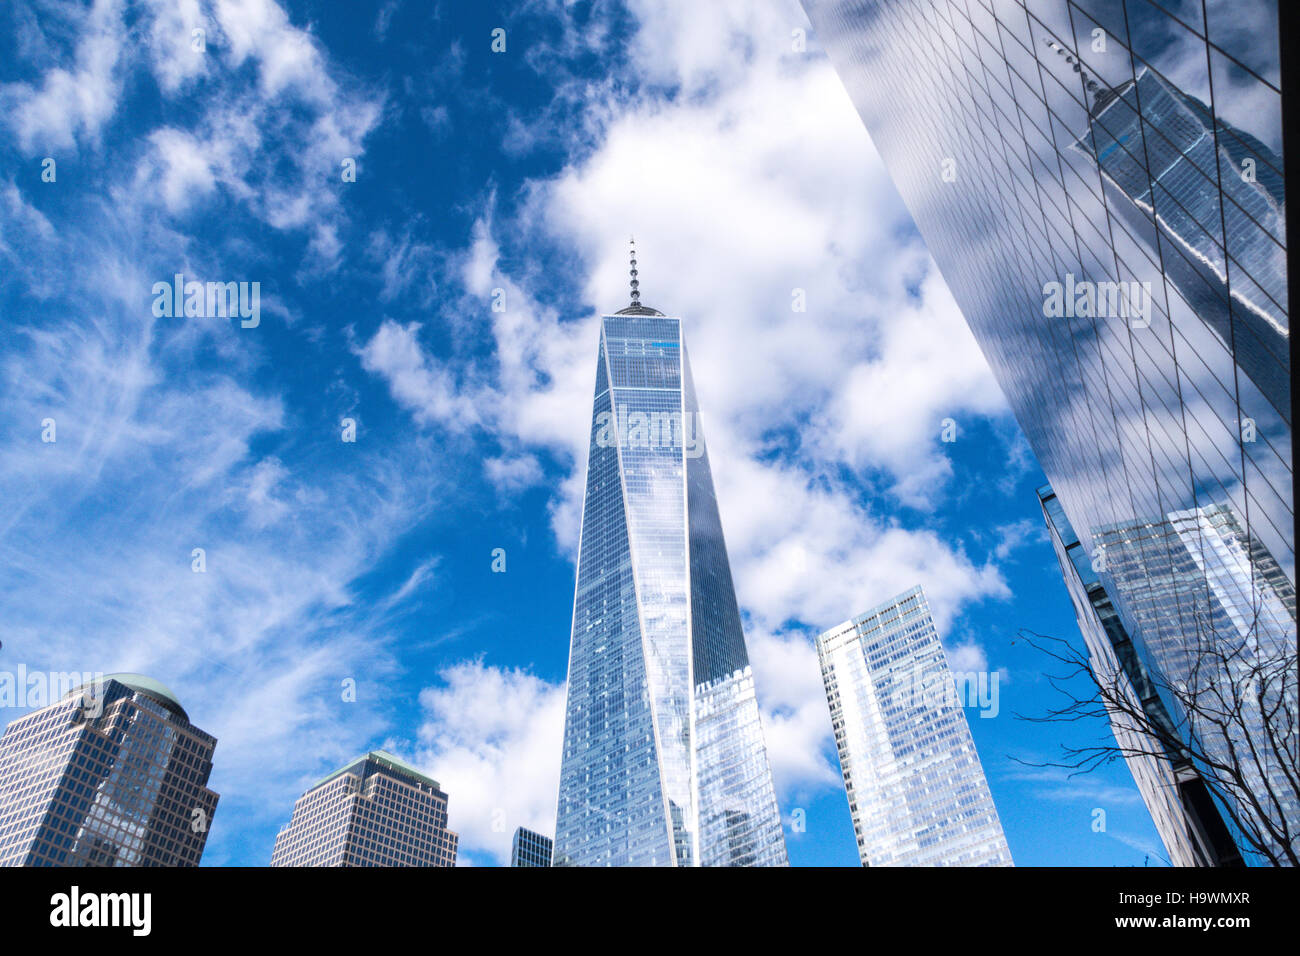 World Trade Center, Lower Manhattan, NYC, USA - Stock Image